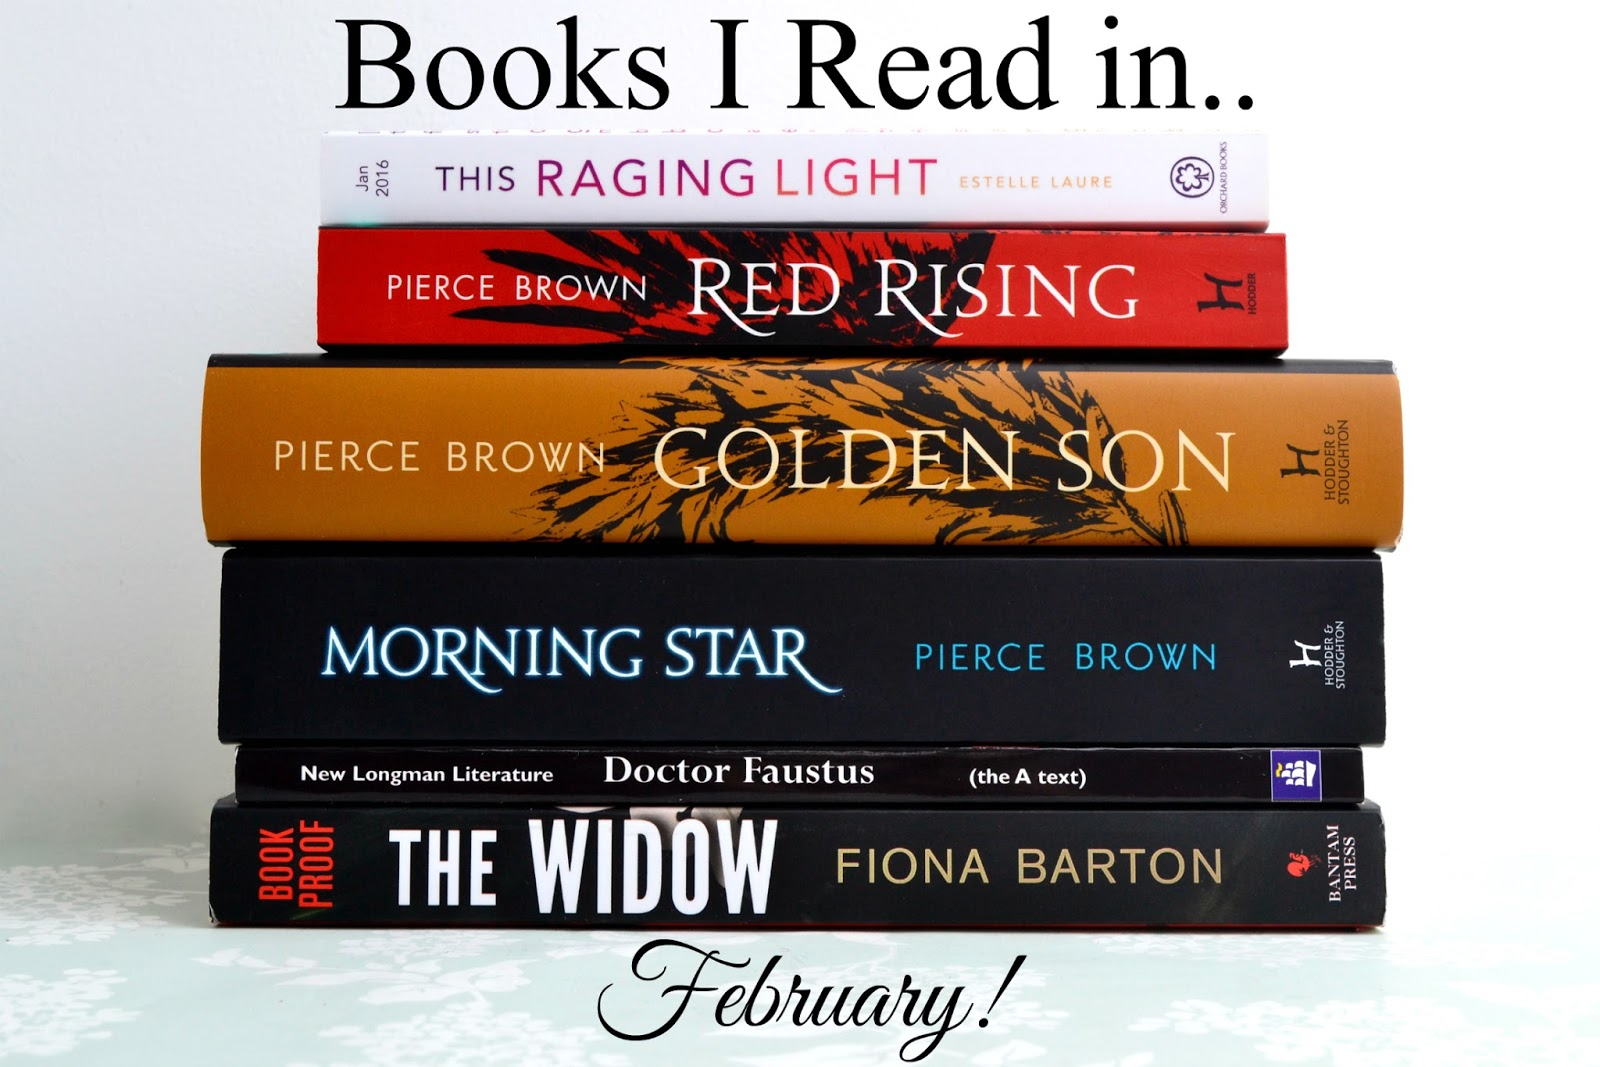 This Raging Light by Estelle Laurie, the Red Rising Trilogy by Pierce Brown, Doctor Faustus by Christopher Marlowe and The Widow by Fiona Barton!